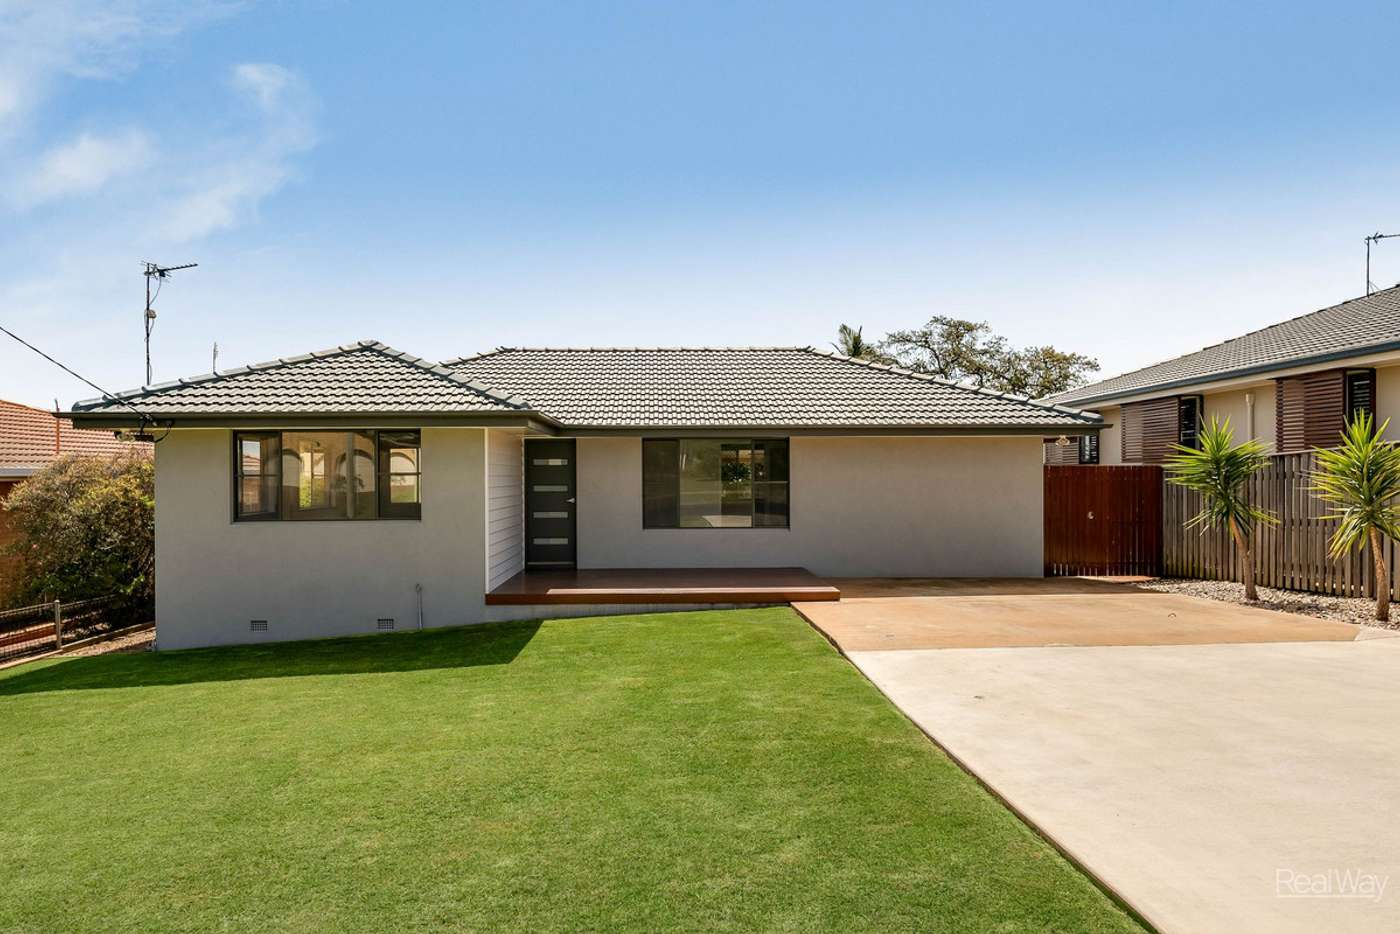 Main view of Homely house listing, 53 Rowbotham Street, Rangeville QLD 4350